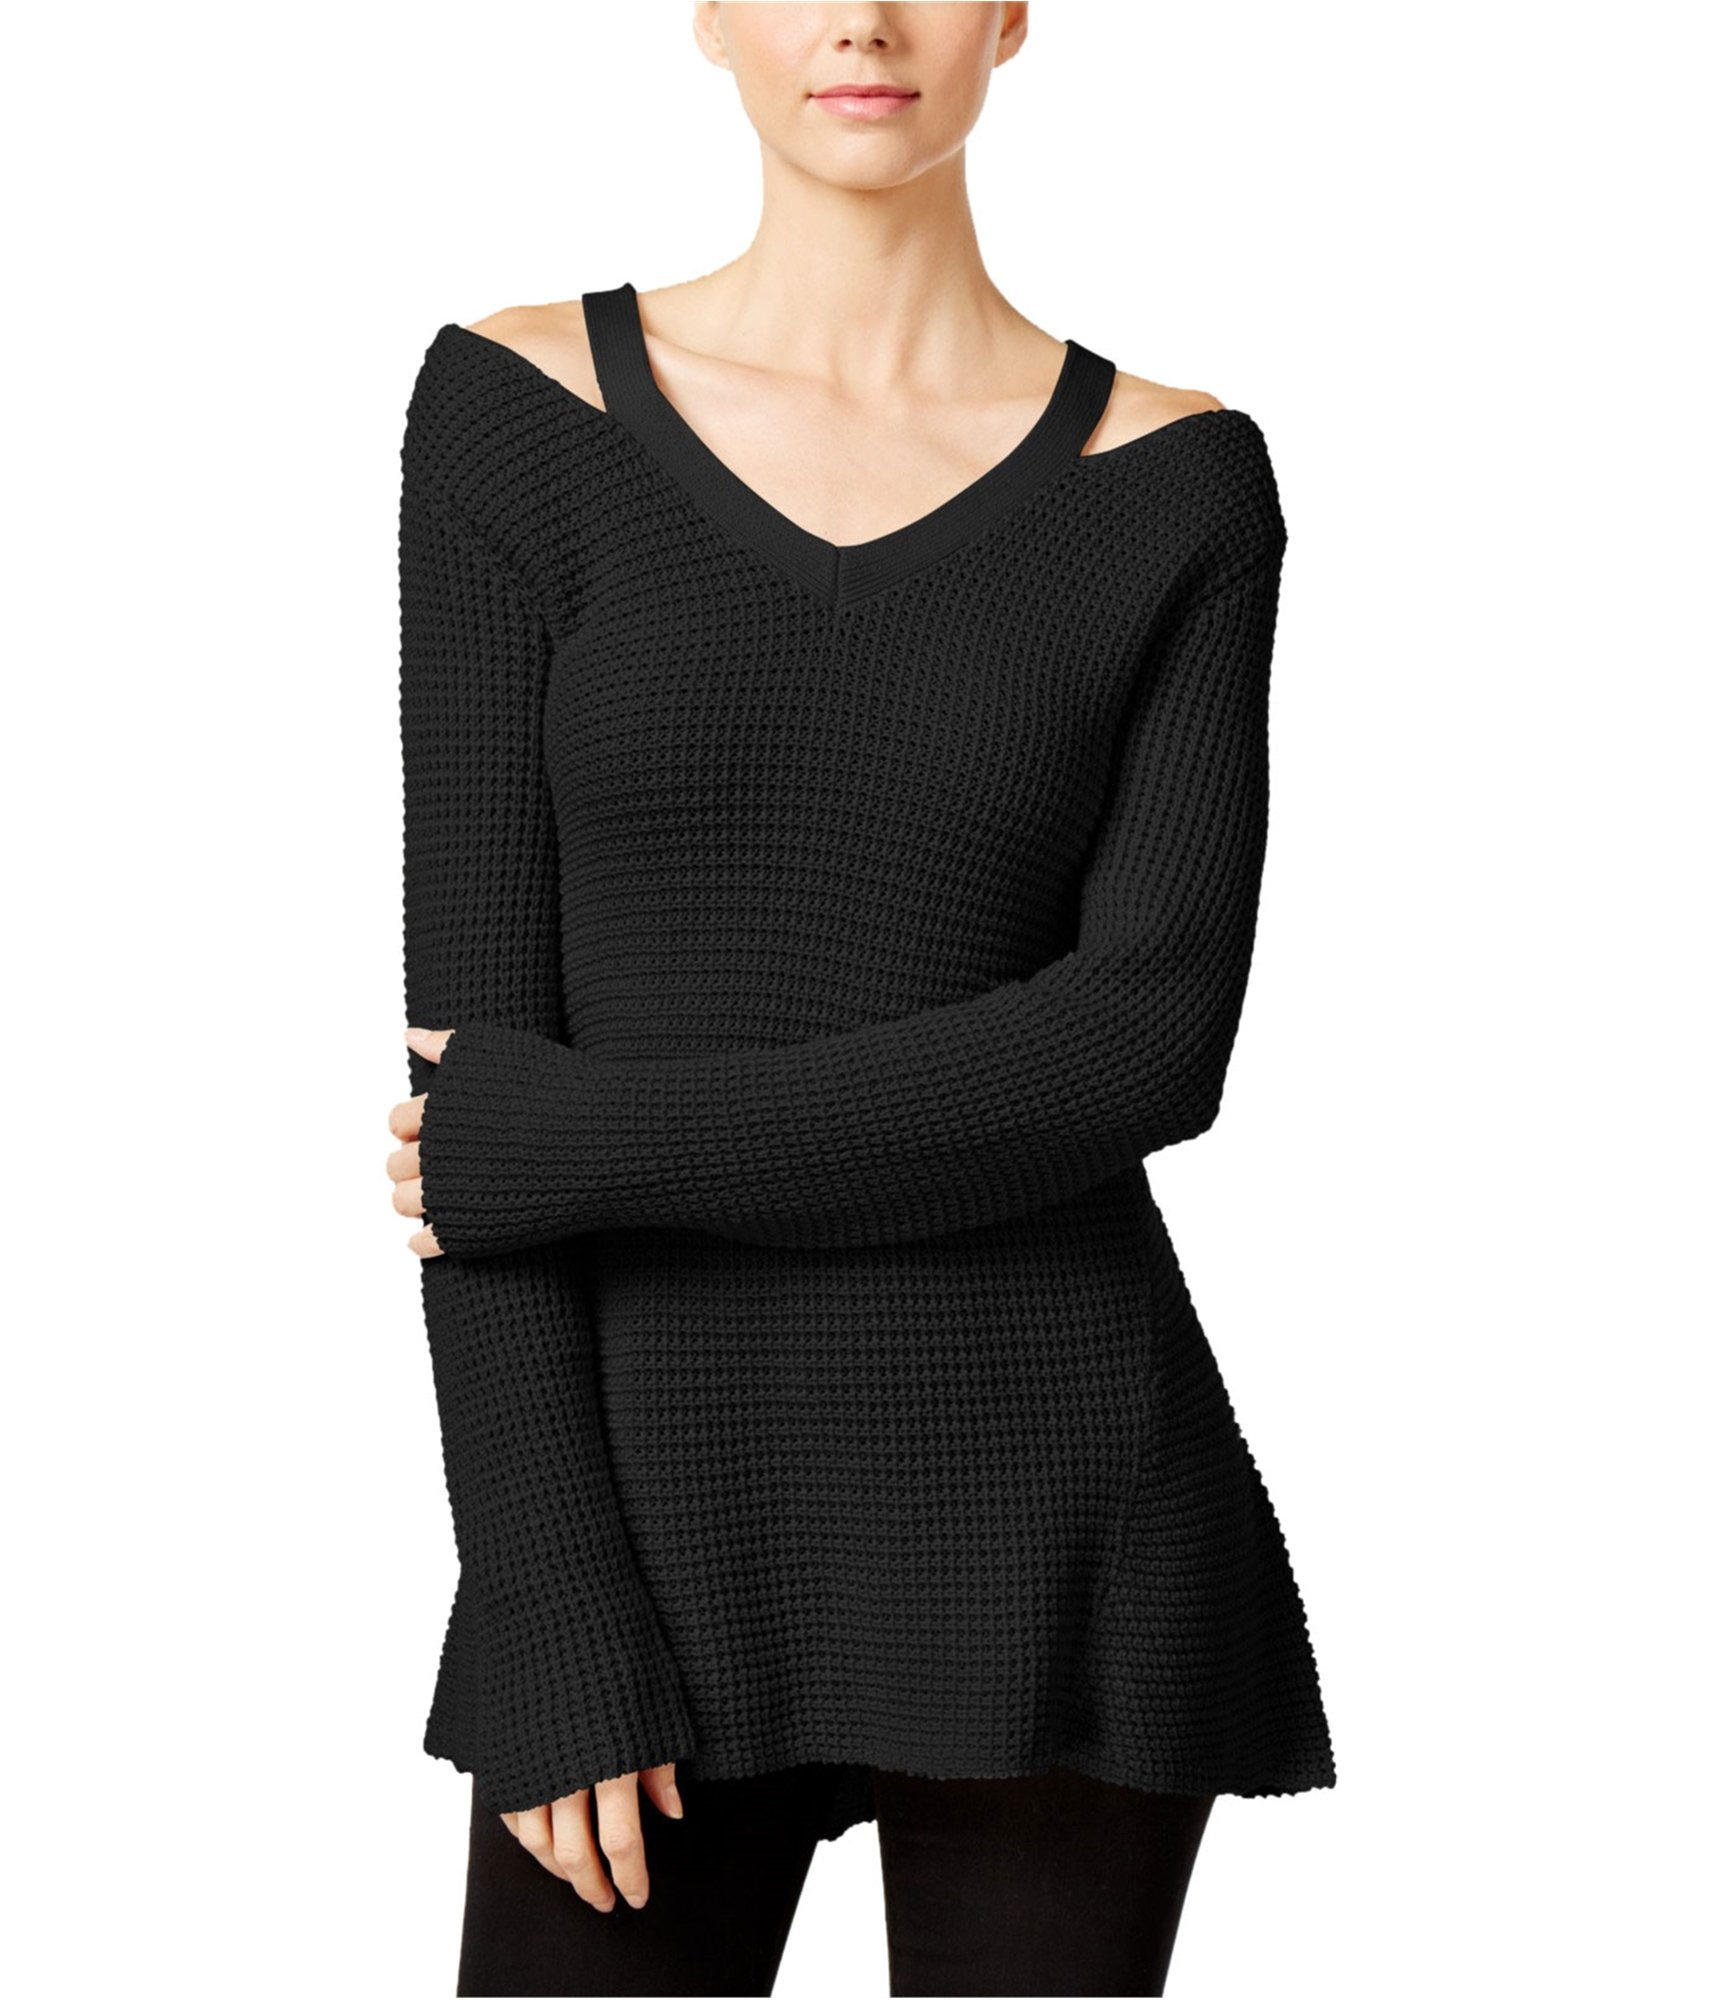 Style & Co. Womens Petites Open-Shoulder Hi-Low Pullover Sweater Black PM